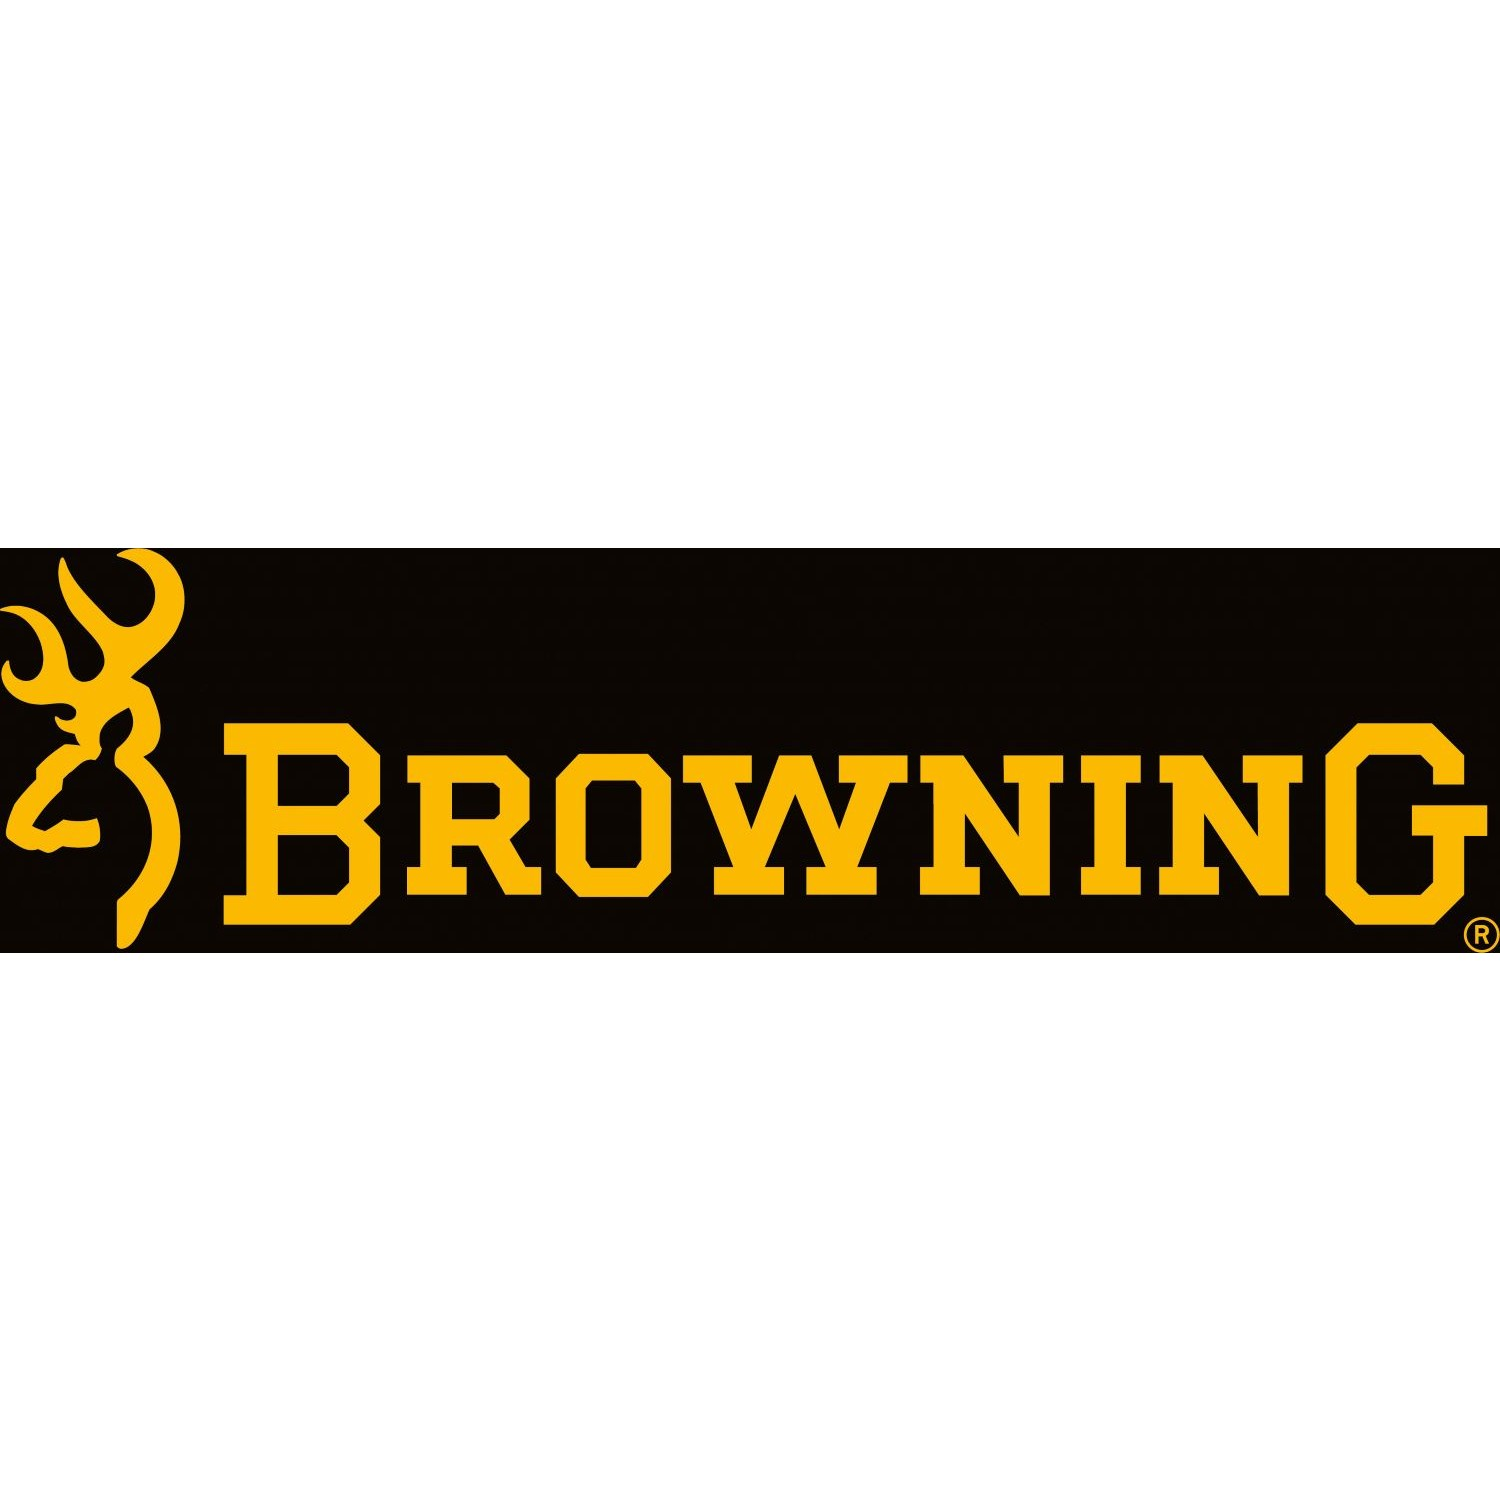 Browning Hanf 300g Chili